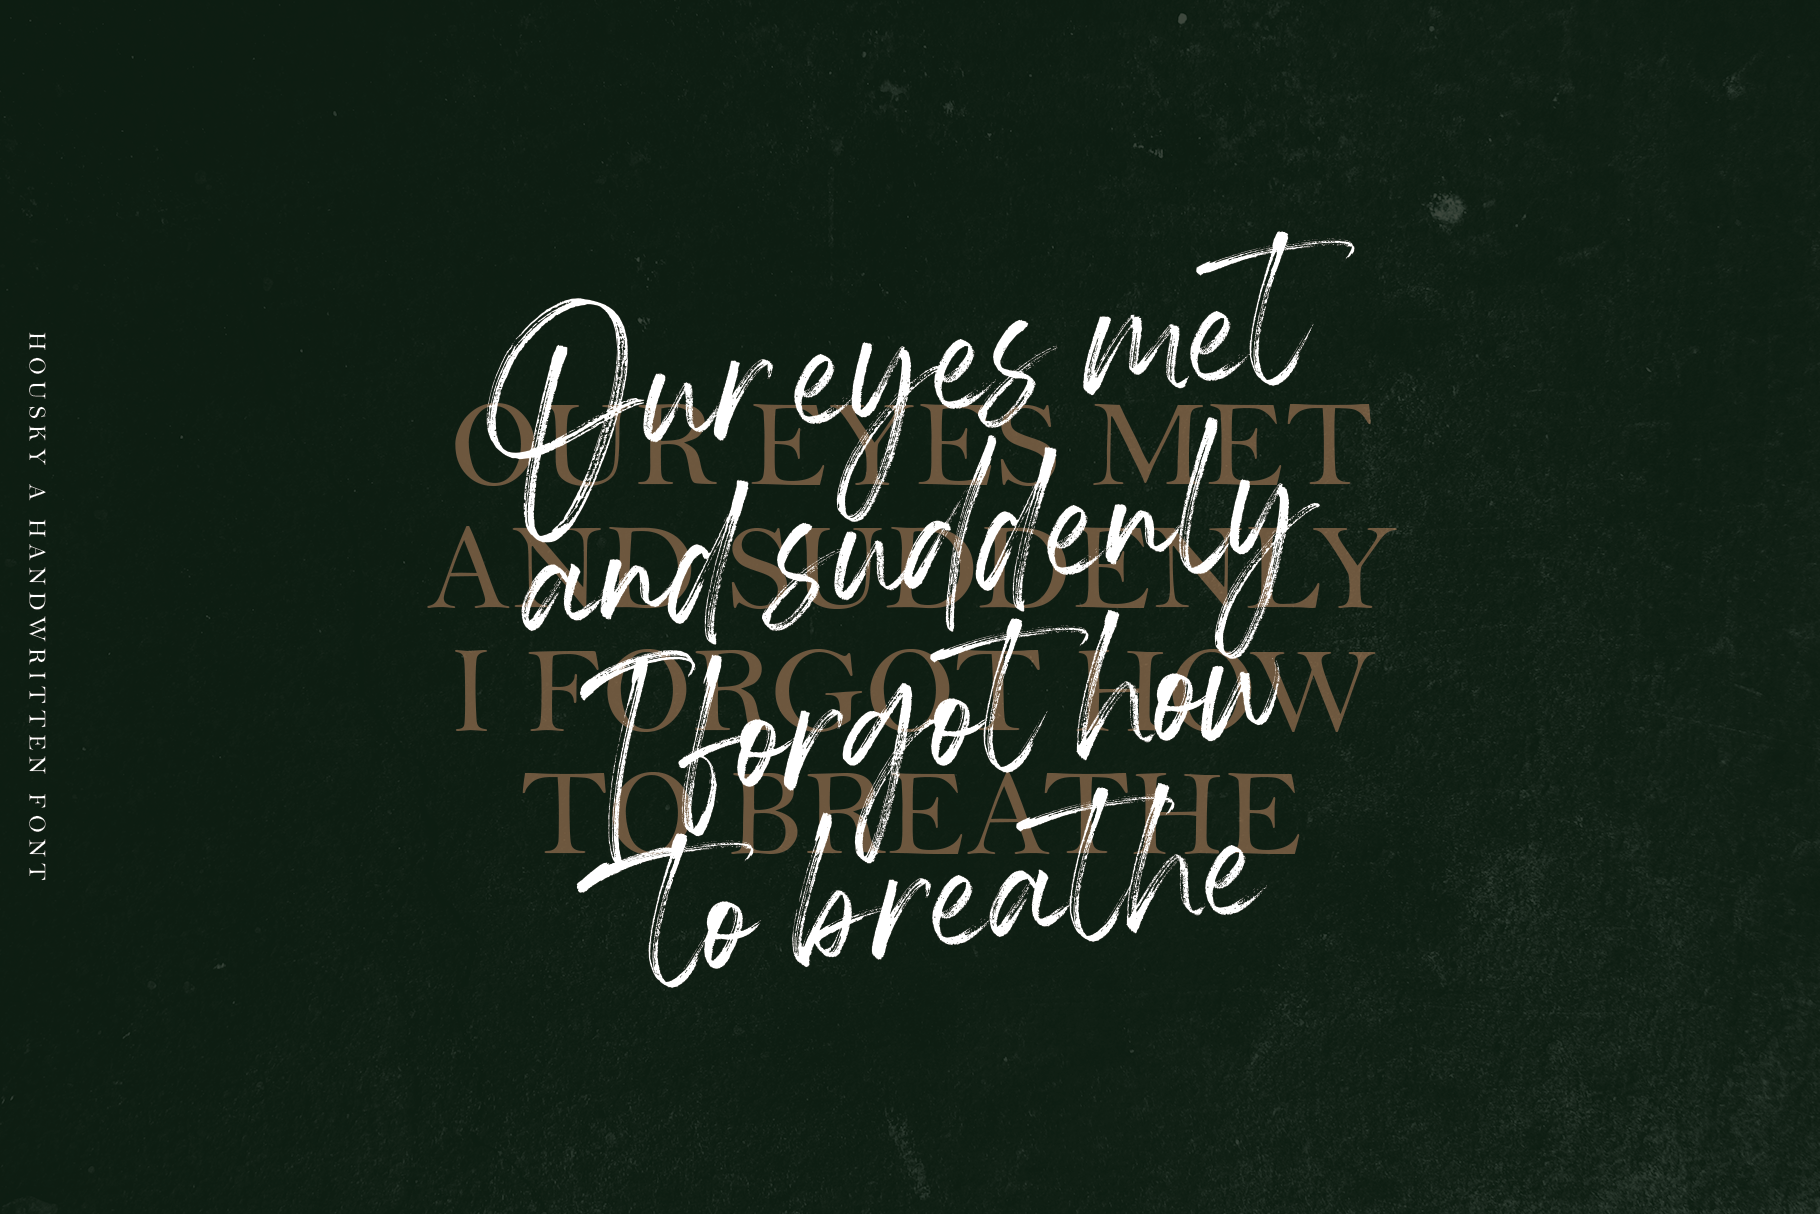 Housky - Handwritten Font example image 3